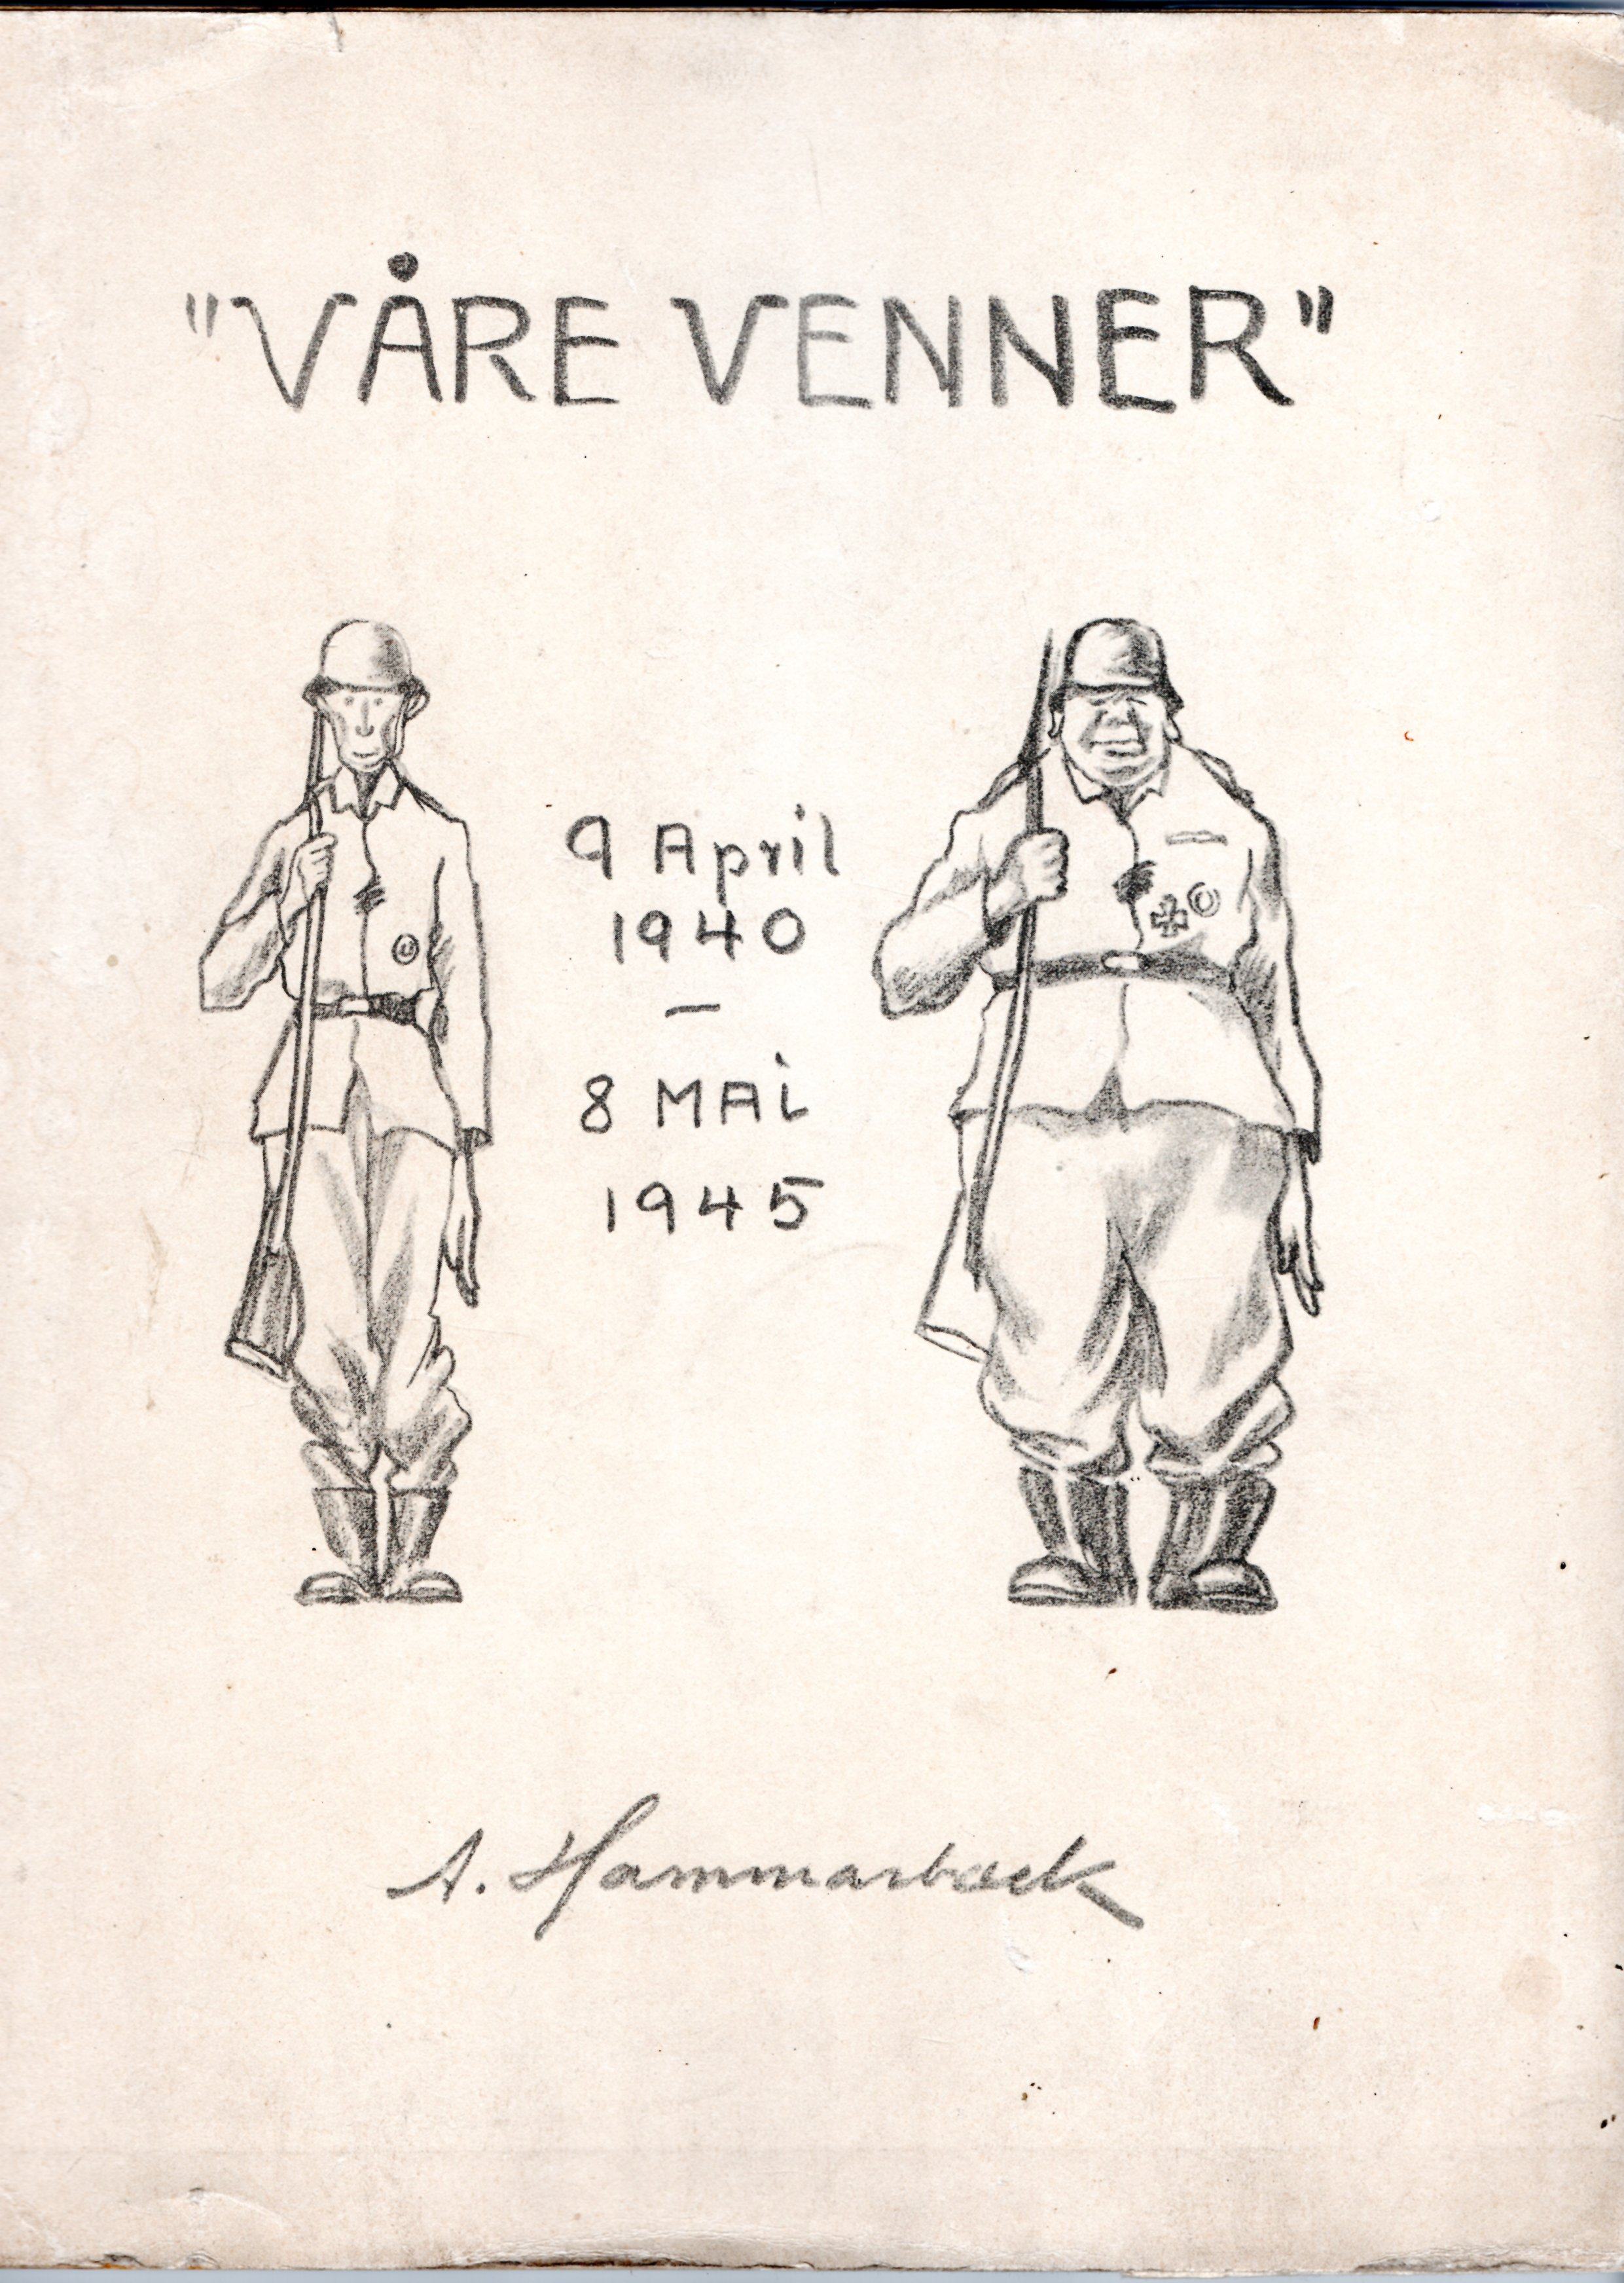 Image for Våre Venner - 9 April 1940 - 8 Mai 1945